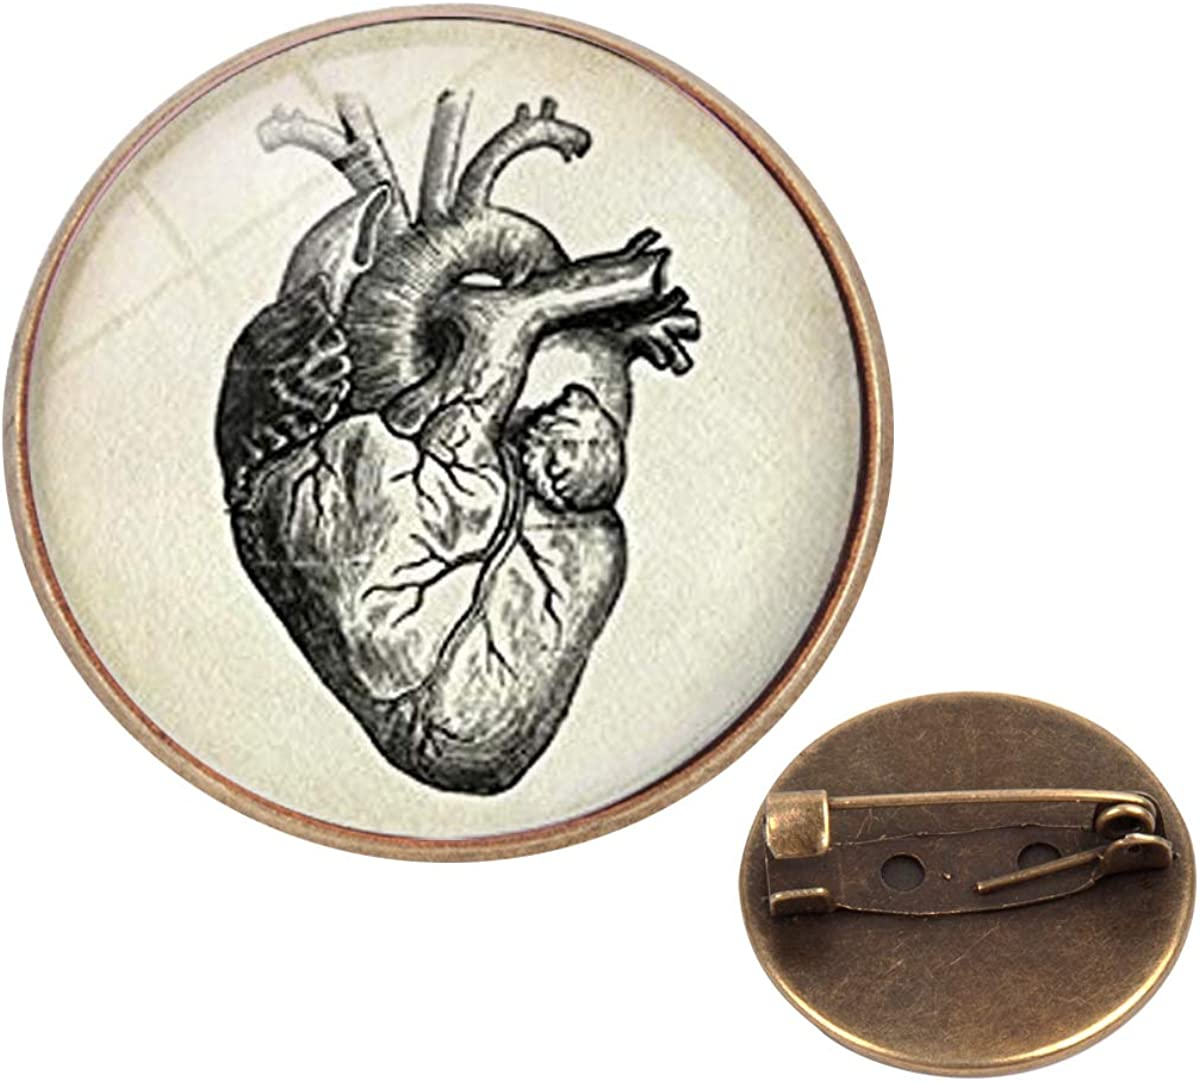 Pinback Buttons Badges Pins Heart Anatomical Drawing Lapel Pin Brooch Clip Trendy Accessory Jacket T-Shirt Bag Hat Shoe